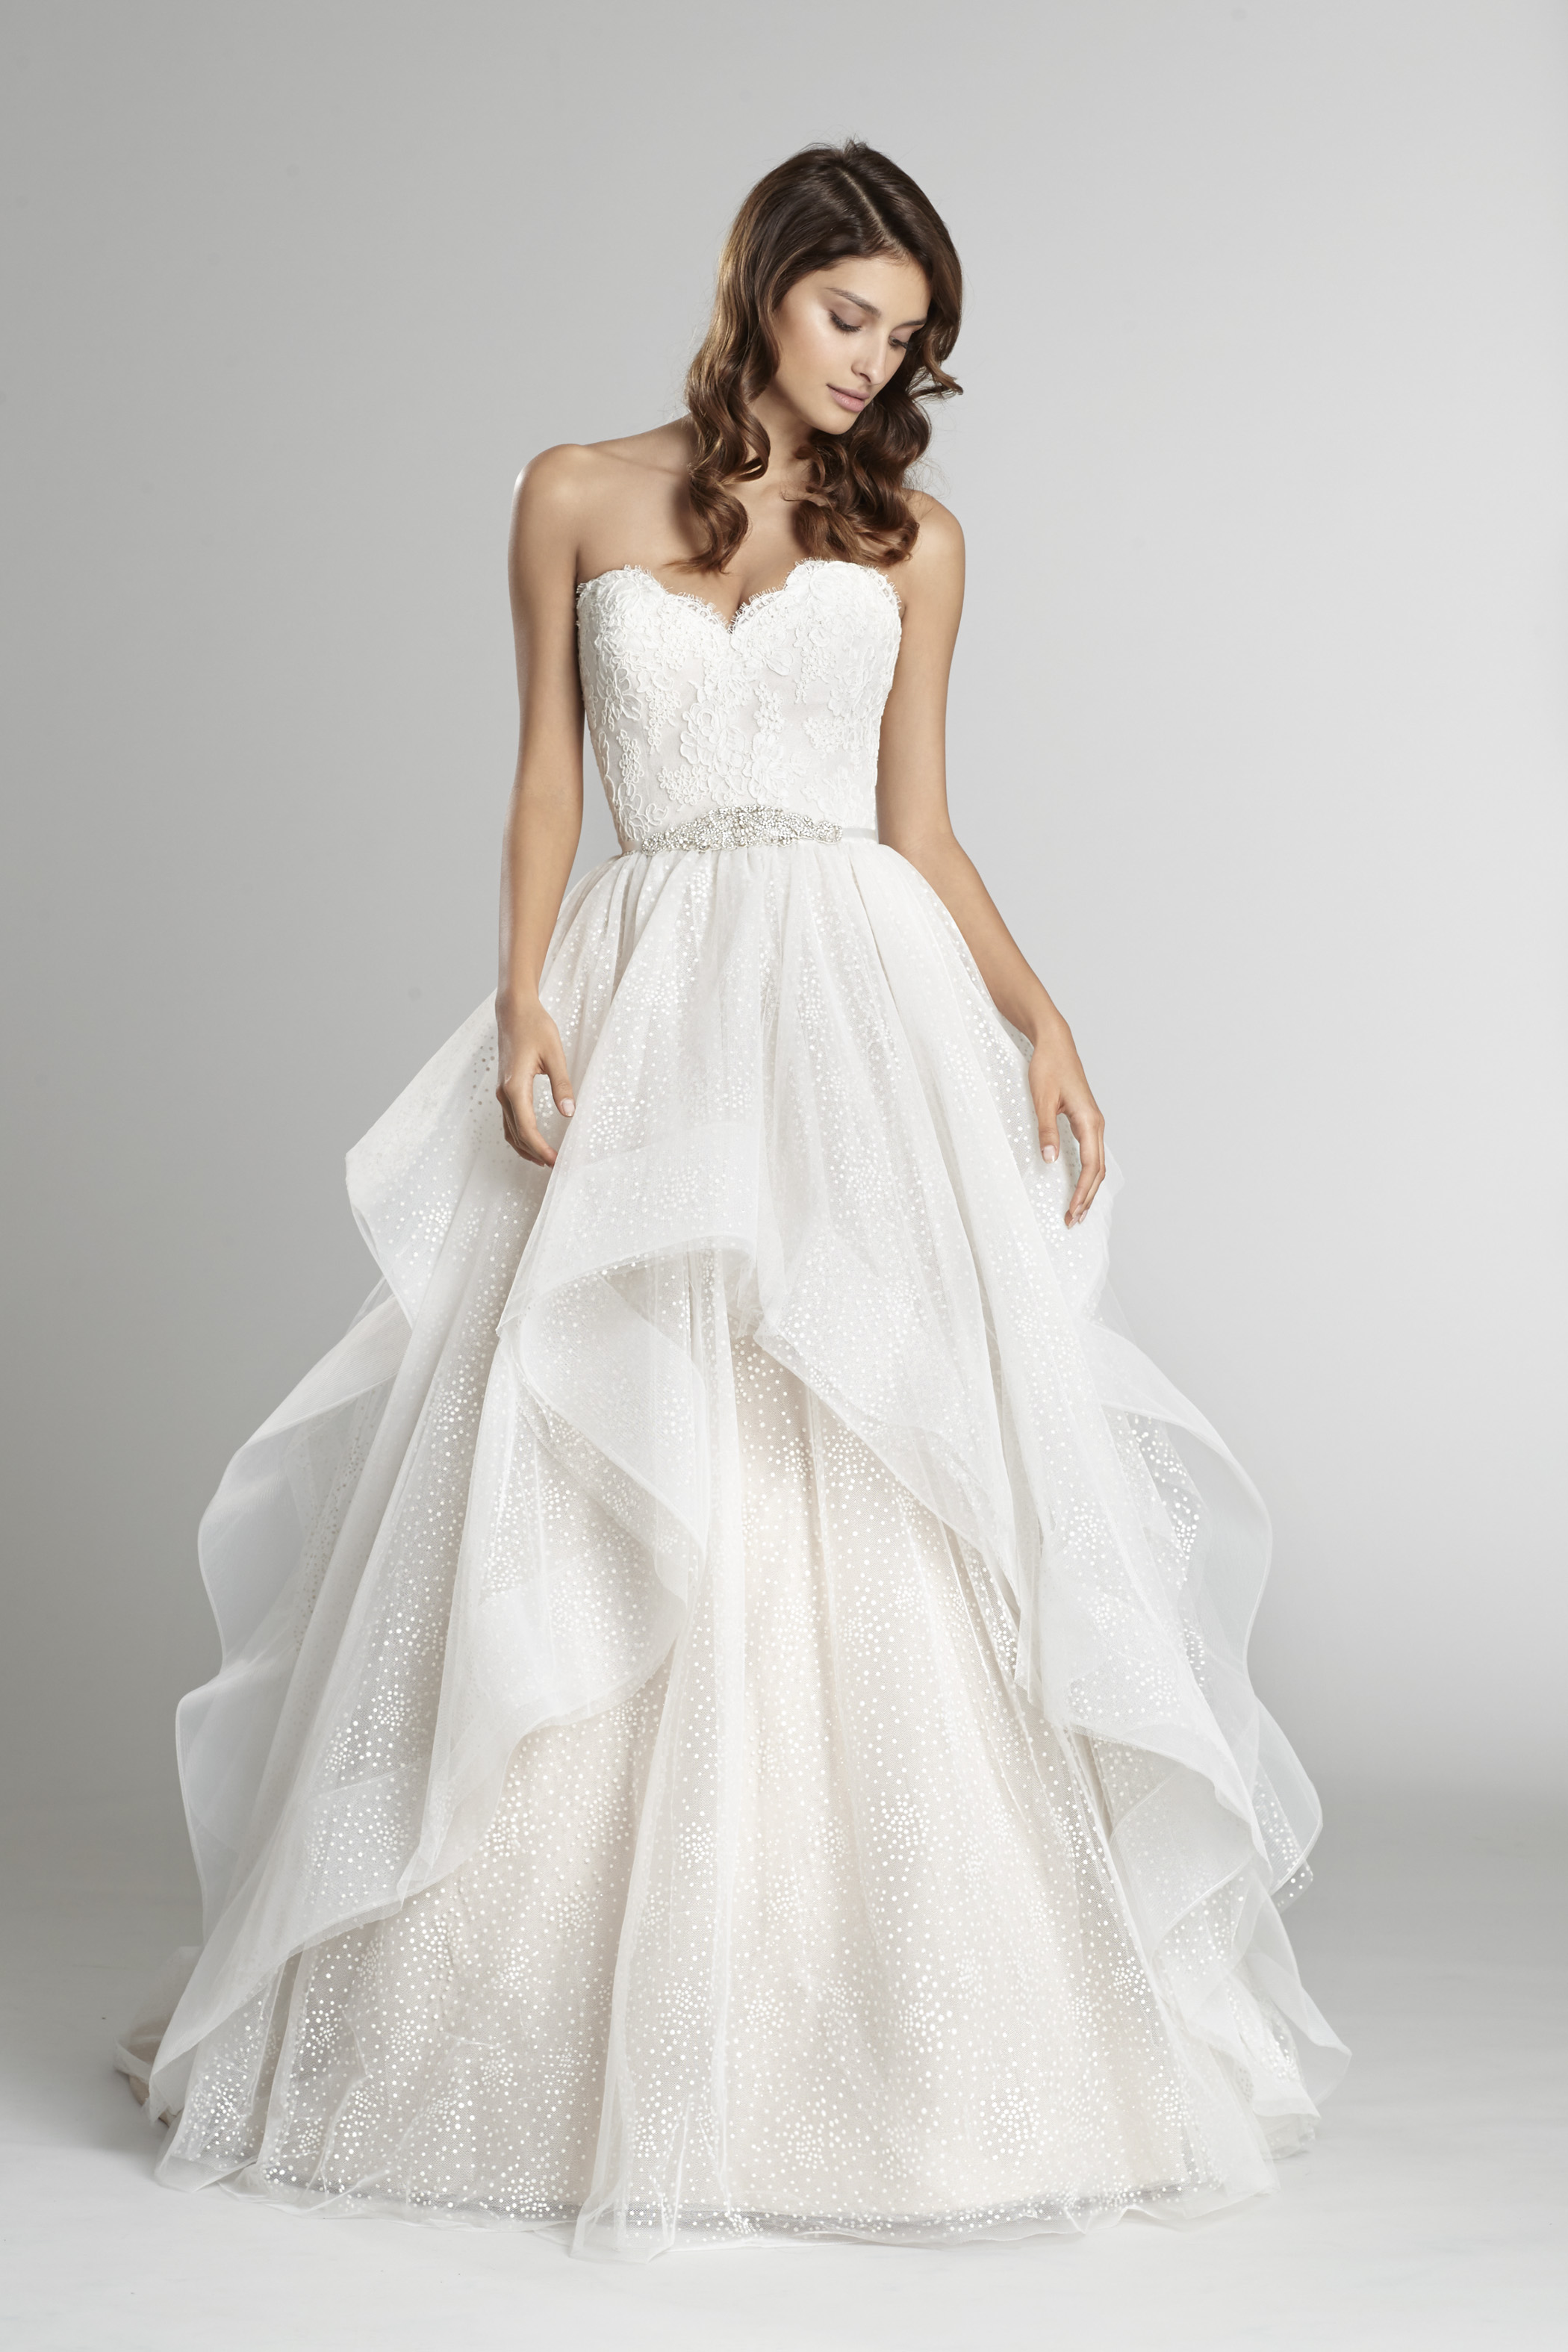 Top 10 bridal gowns by alvina valenta jlm couture for Wedding dress cleaning des moines